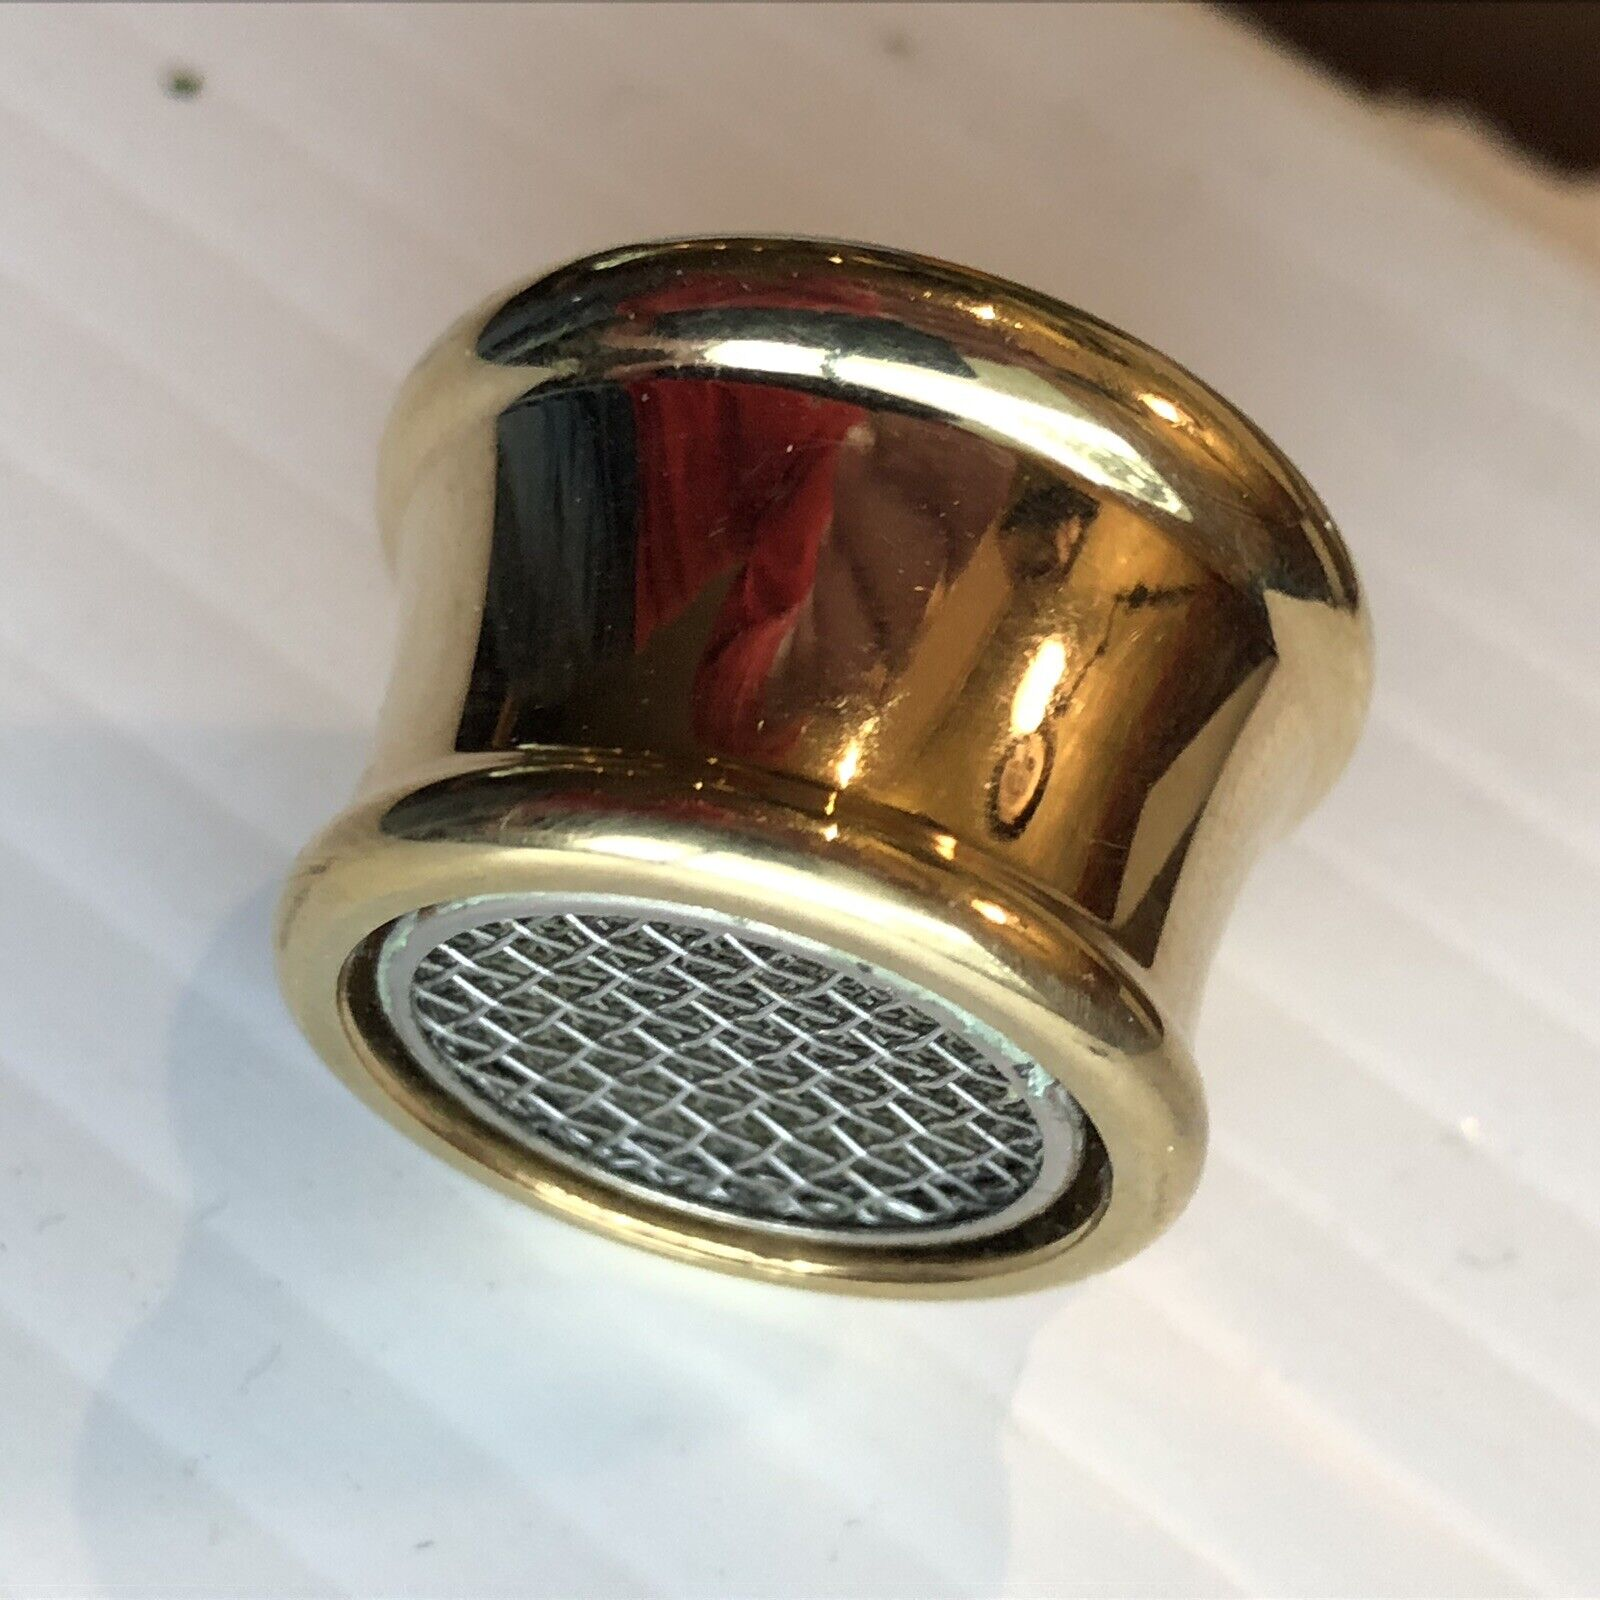 Details About Rohl Perrin U0026 Rowe Kitchen Faucet Aerator Polished Brass